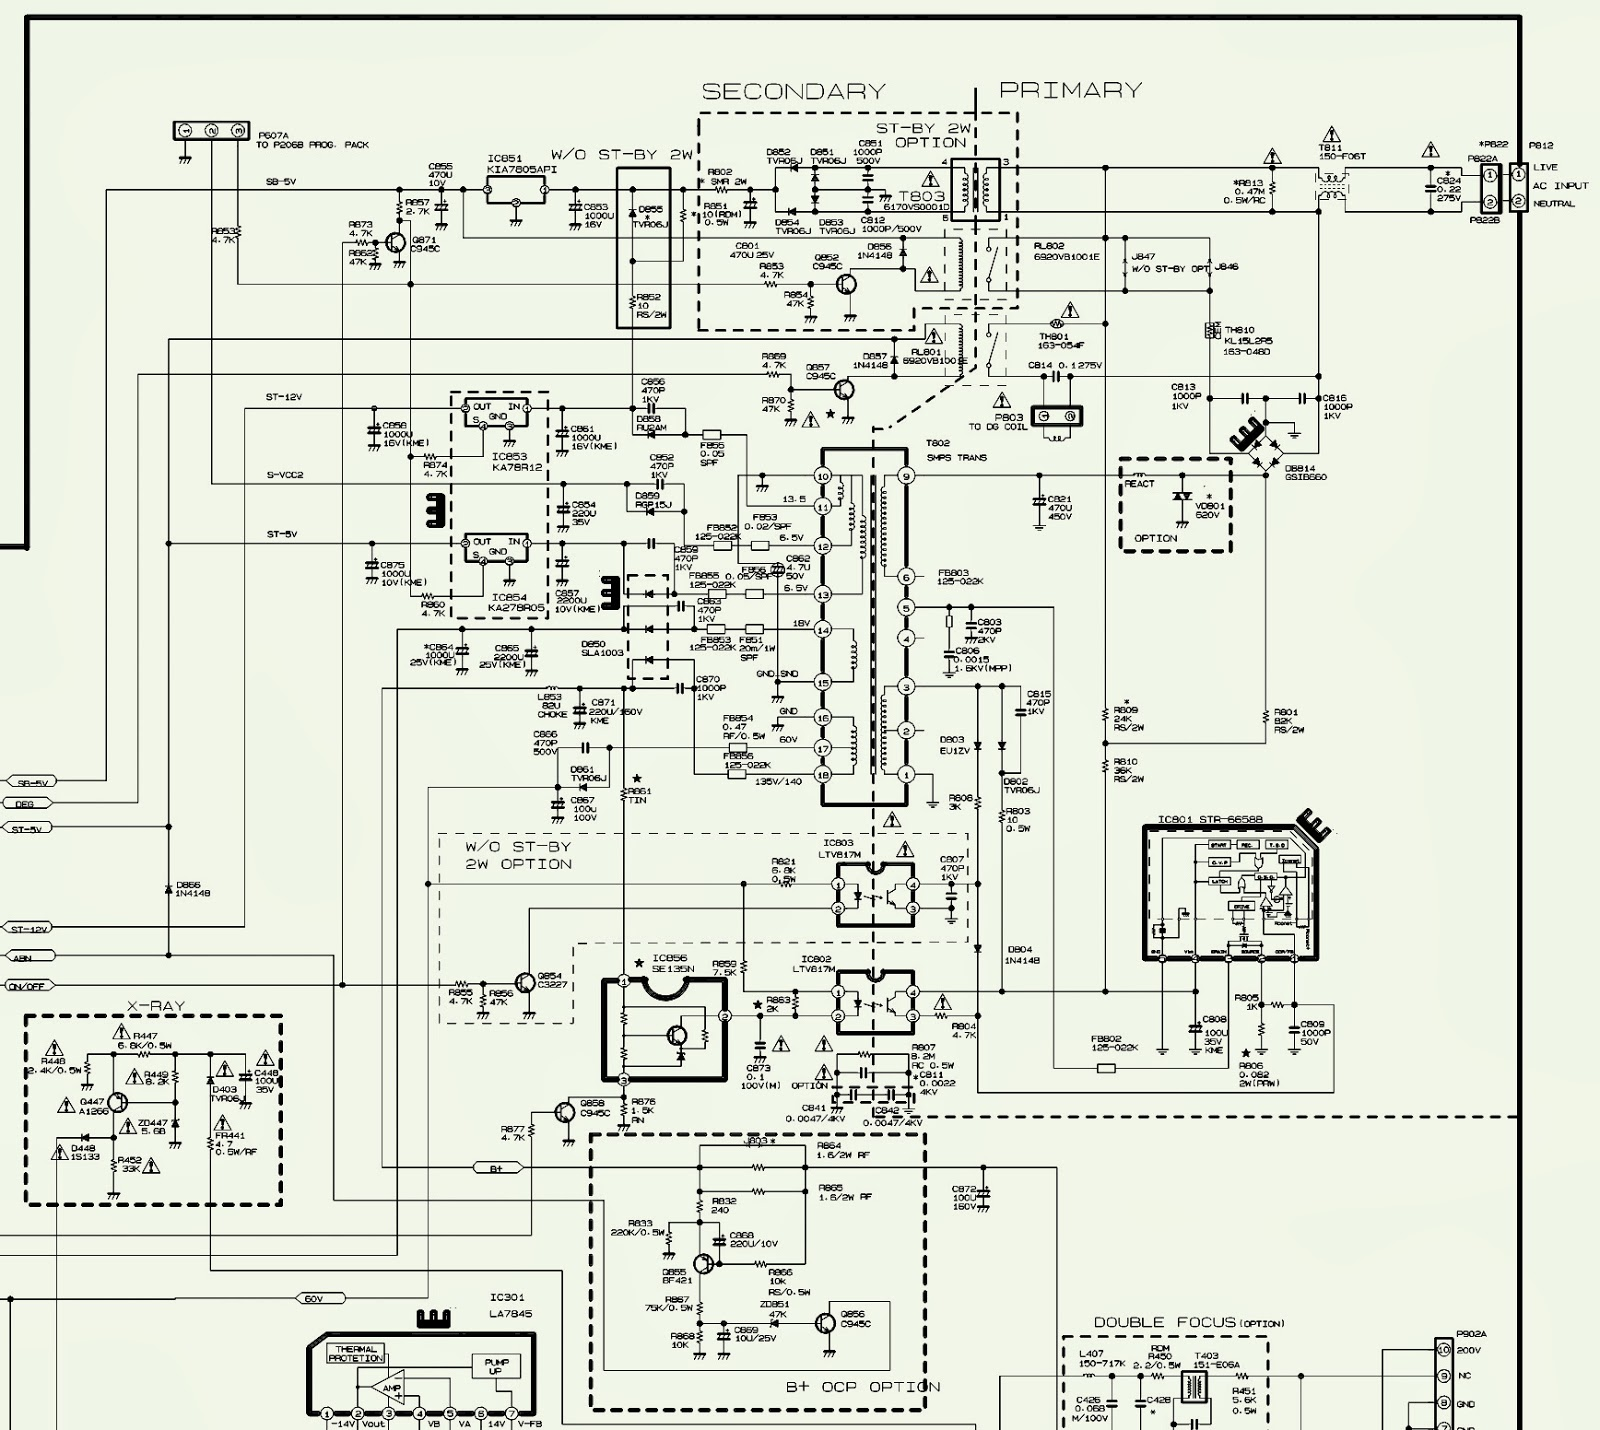 lg microwave parts diagram  u2013 bestmicrowave